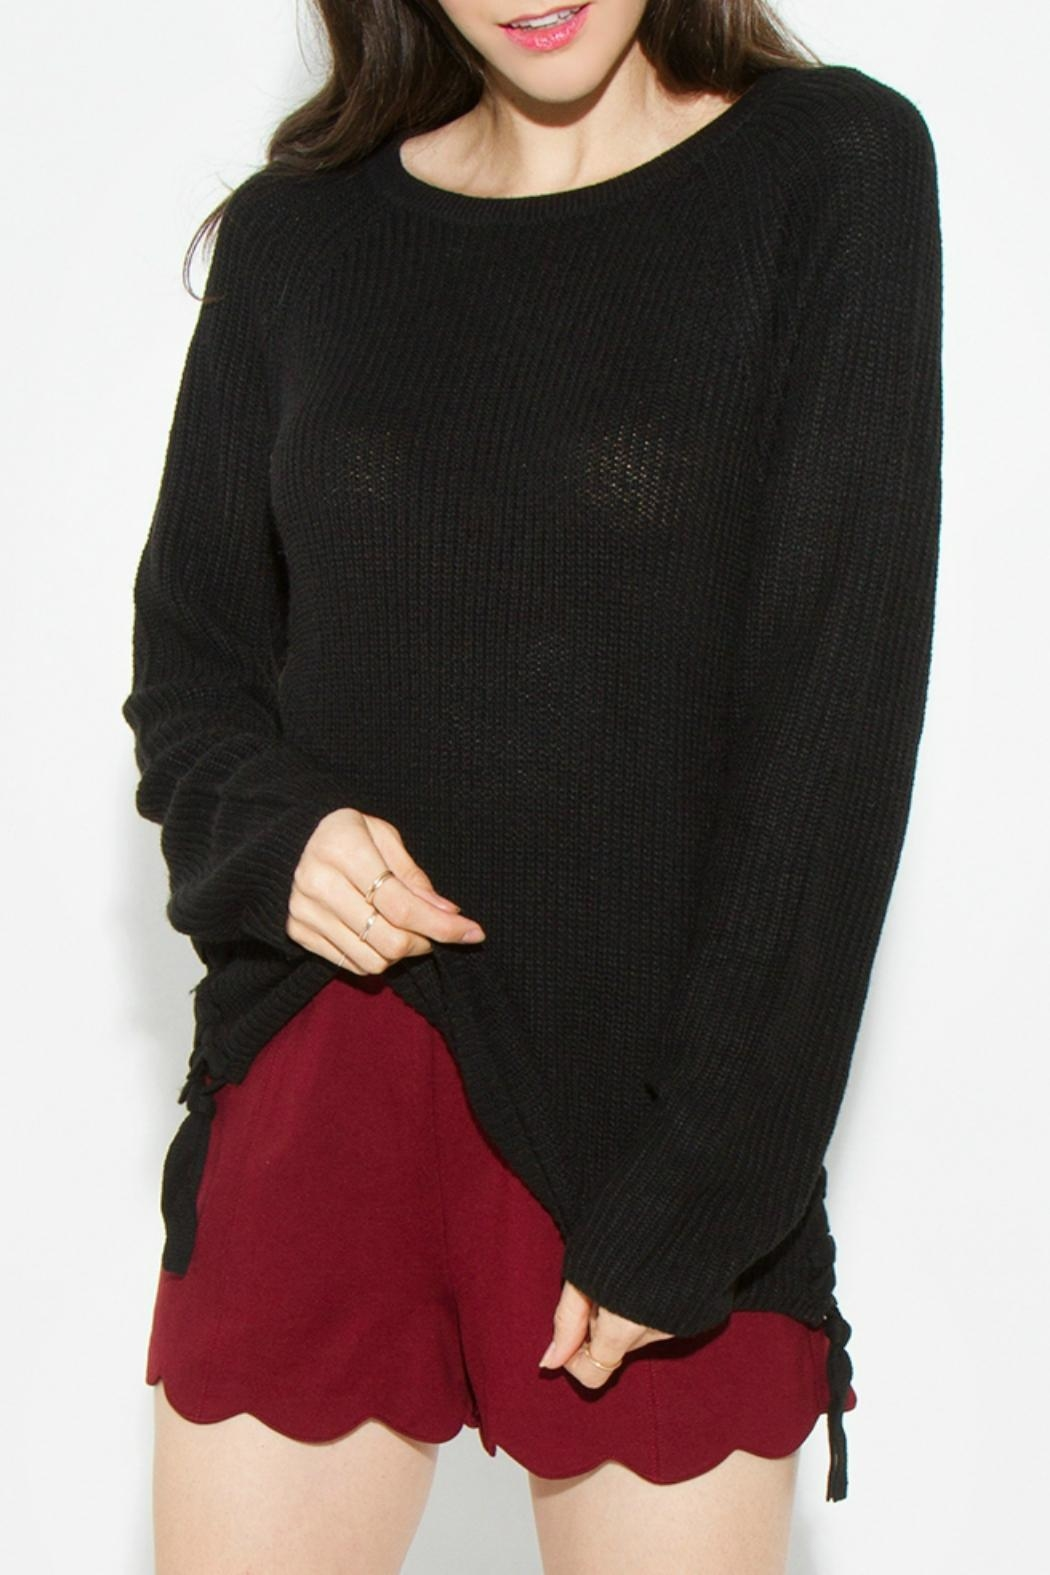 Sugar Lips Black Lace-Up Sweater - Front Full Image